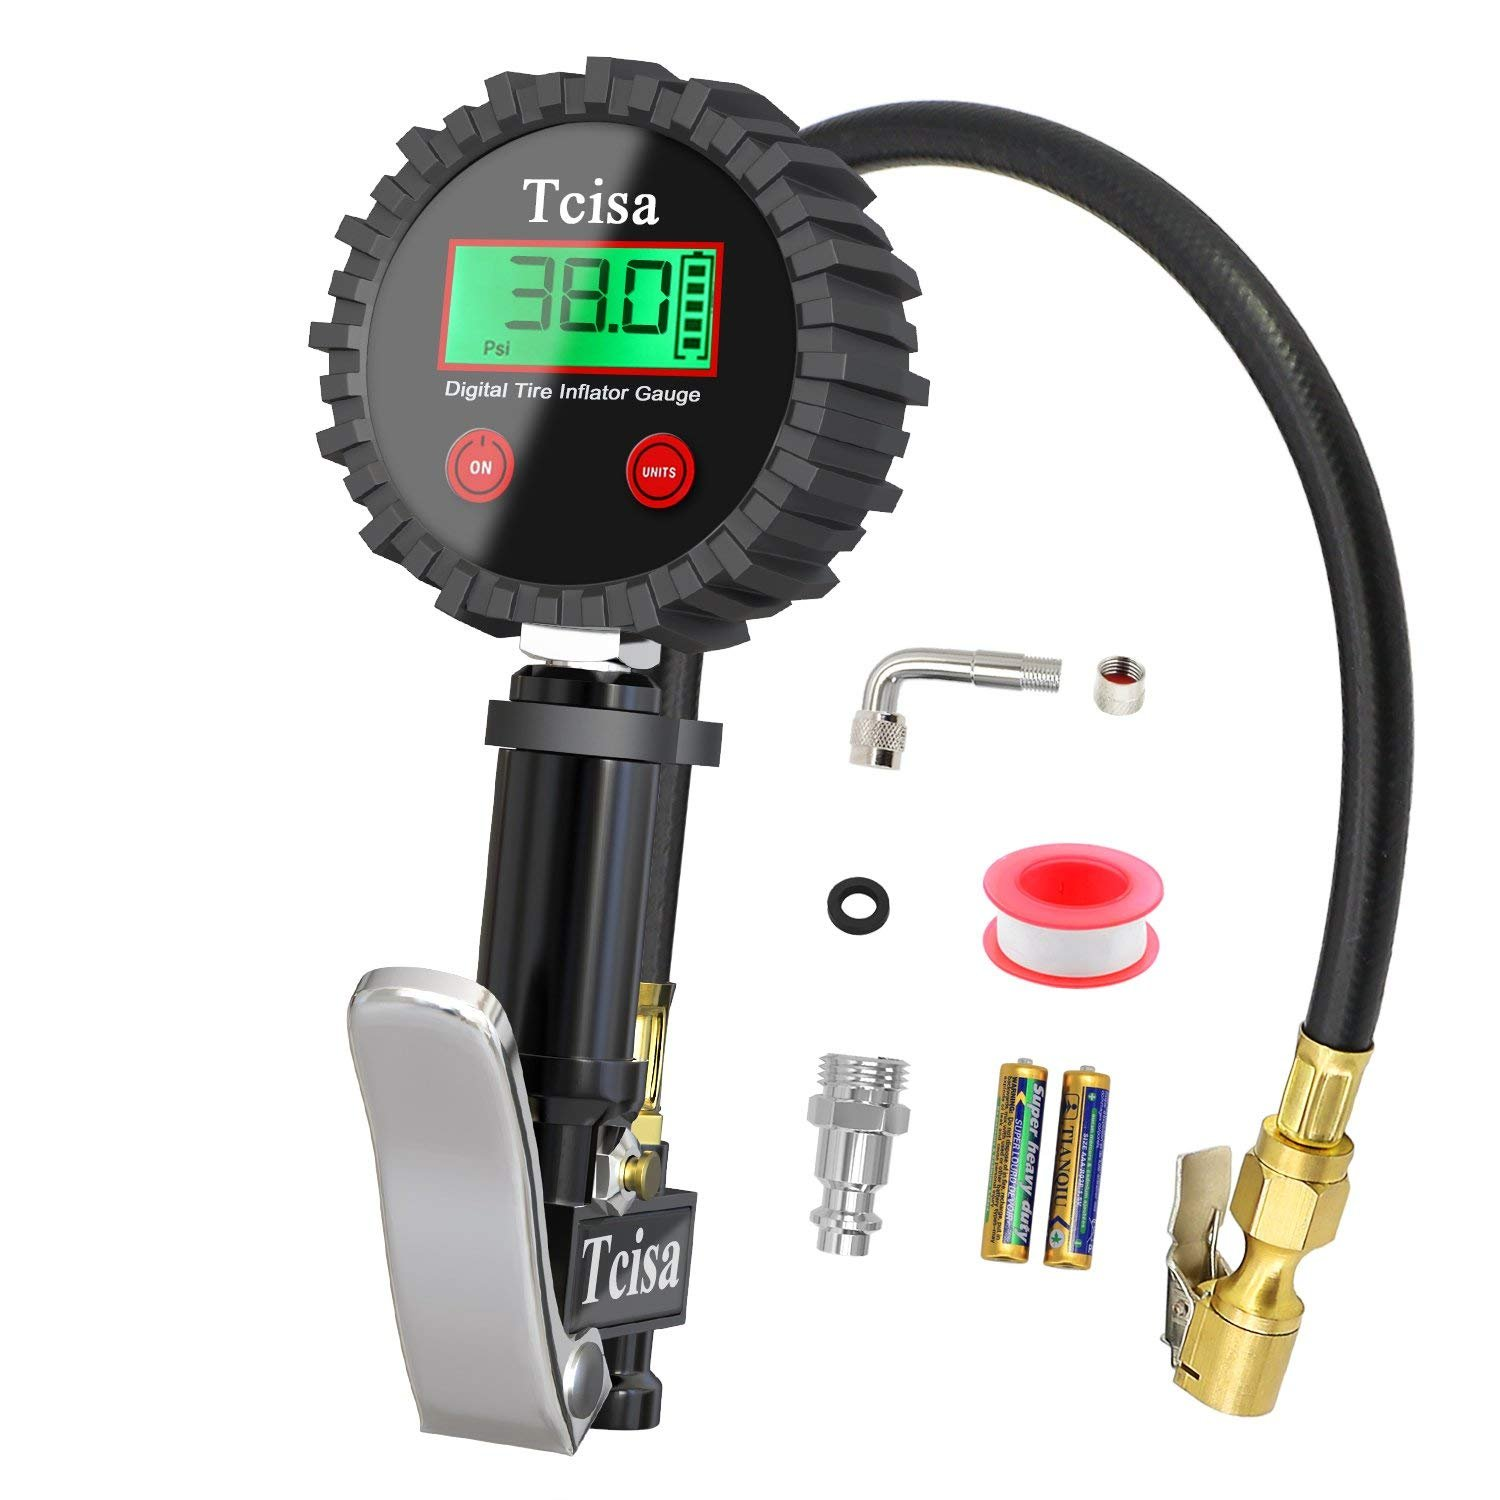 Tcisa Tire Inflator with Pressure Gauge - Digital Heavy Duty 200 PSI Air Pressure Gauge with Brass Air Chuck Valve Extender Rubber Air Hose Quick-Connect Fitting